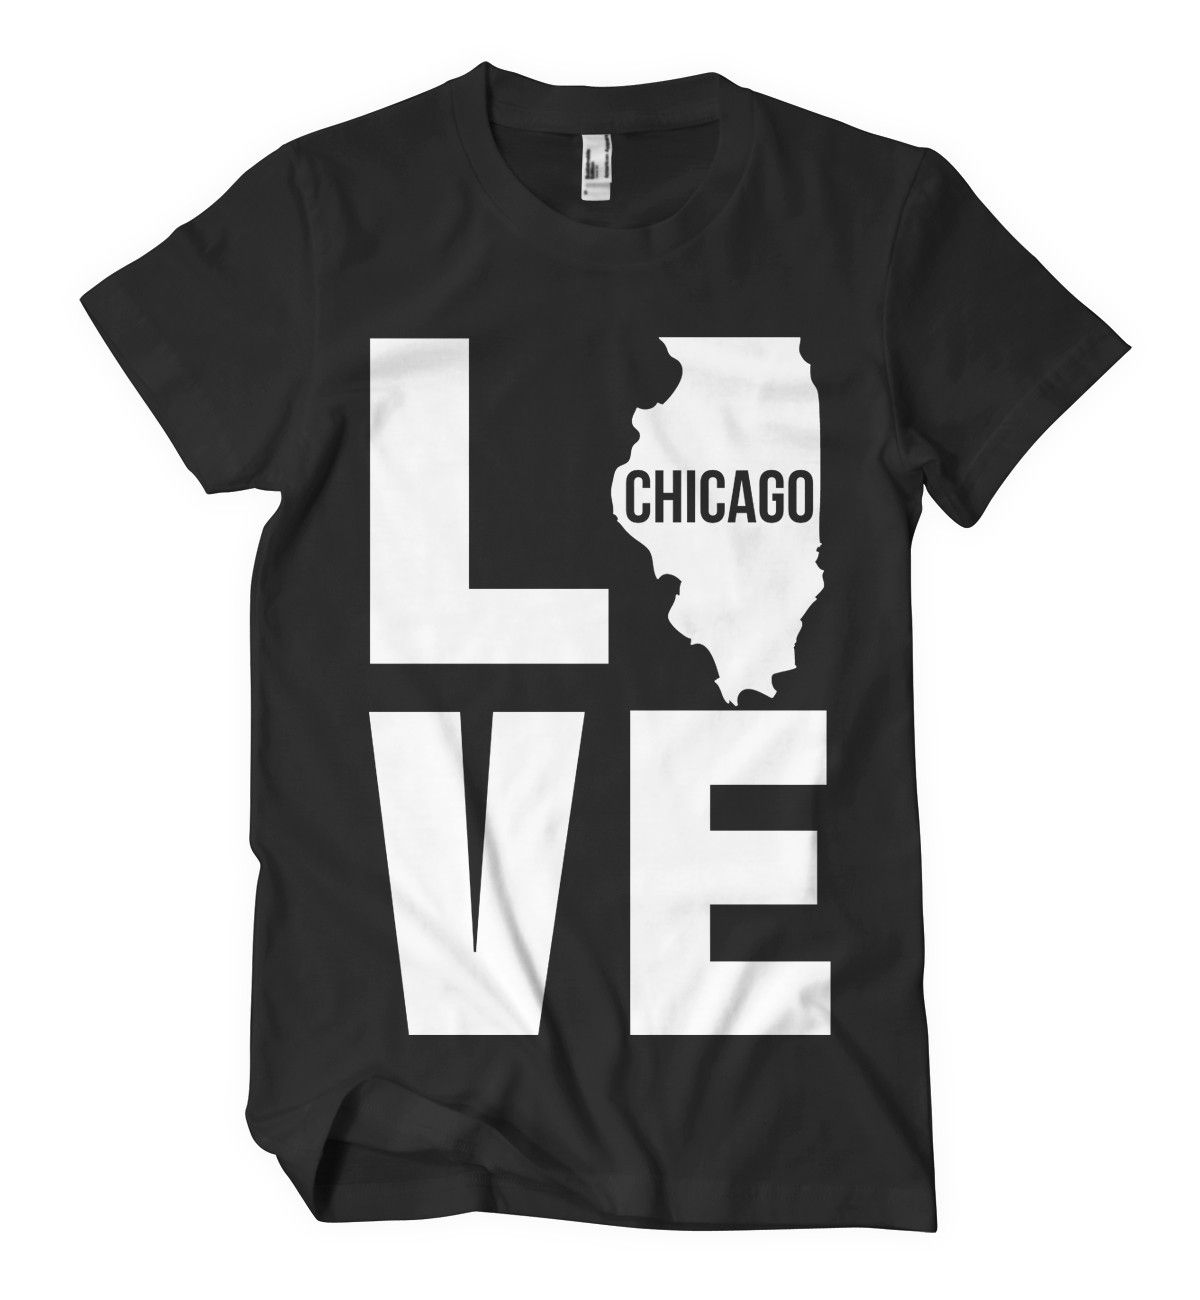 Love Chicago--$28, up to 4XL